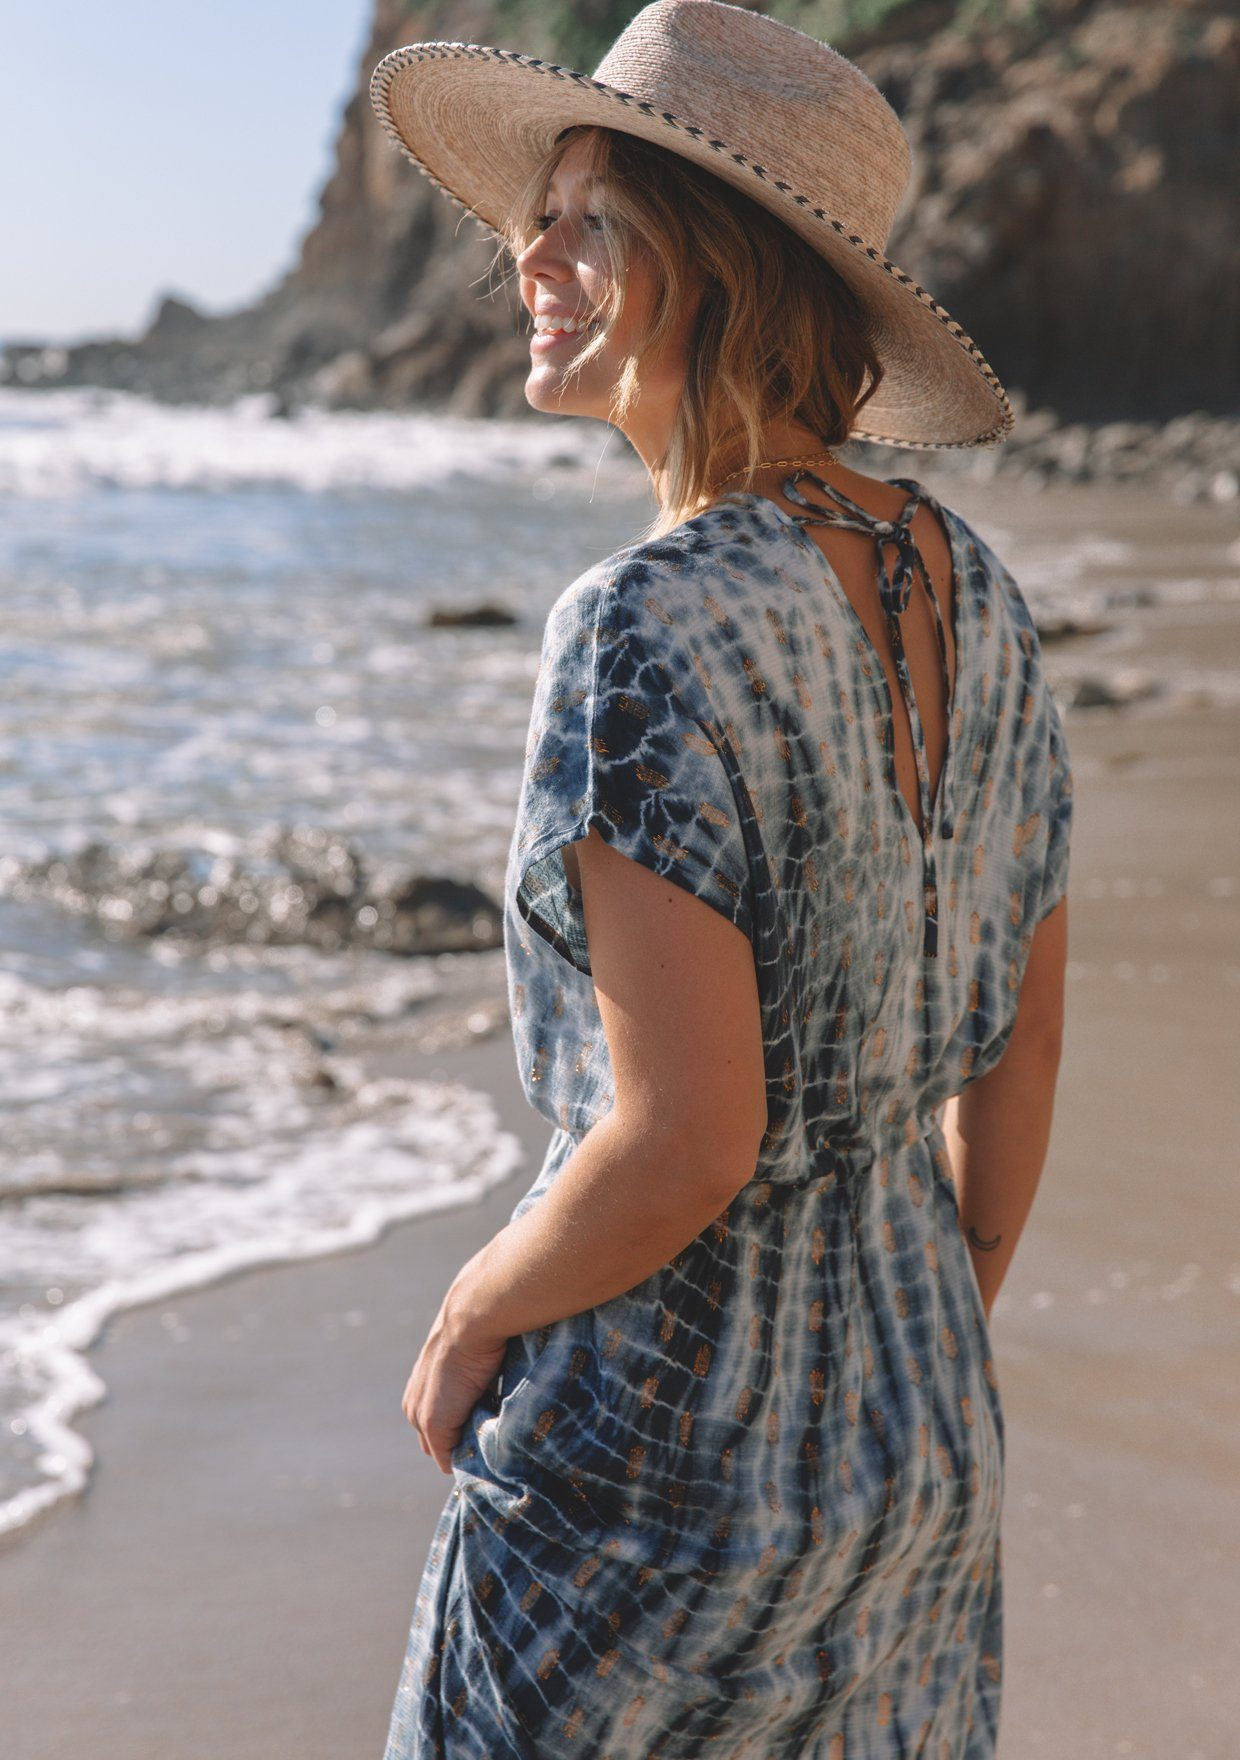 [Color: Navy/Copper] Lovestitch navy/copper Say hello to beach days in this flattering tie-dye beach cover-up. Elevate your boho style with stunning lurex details and kimono sleeves.